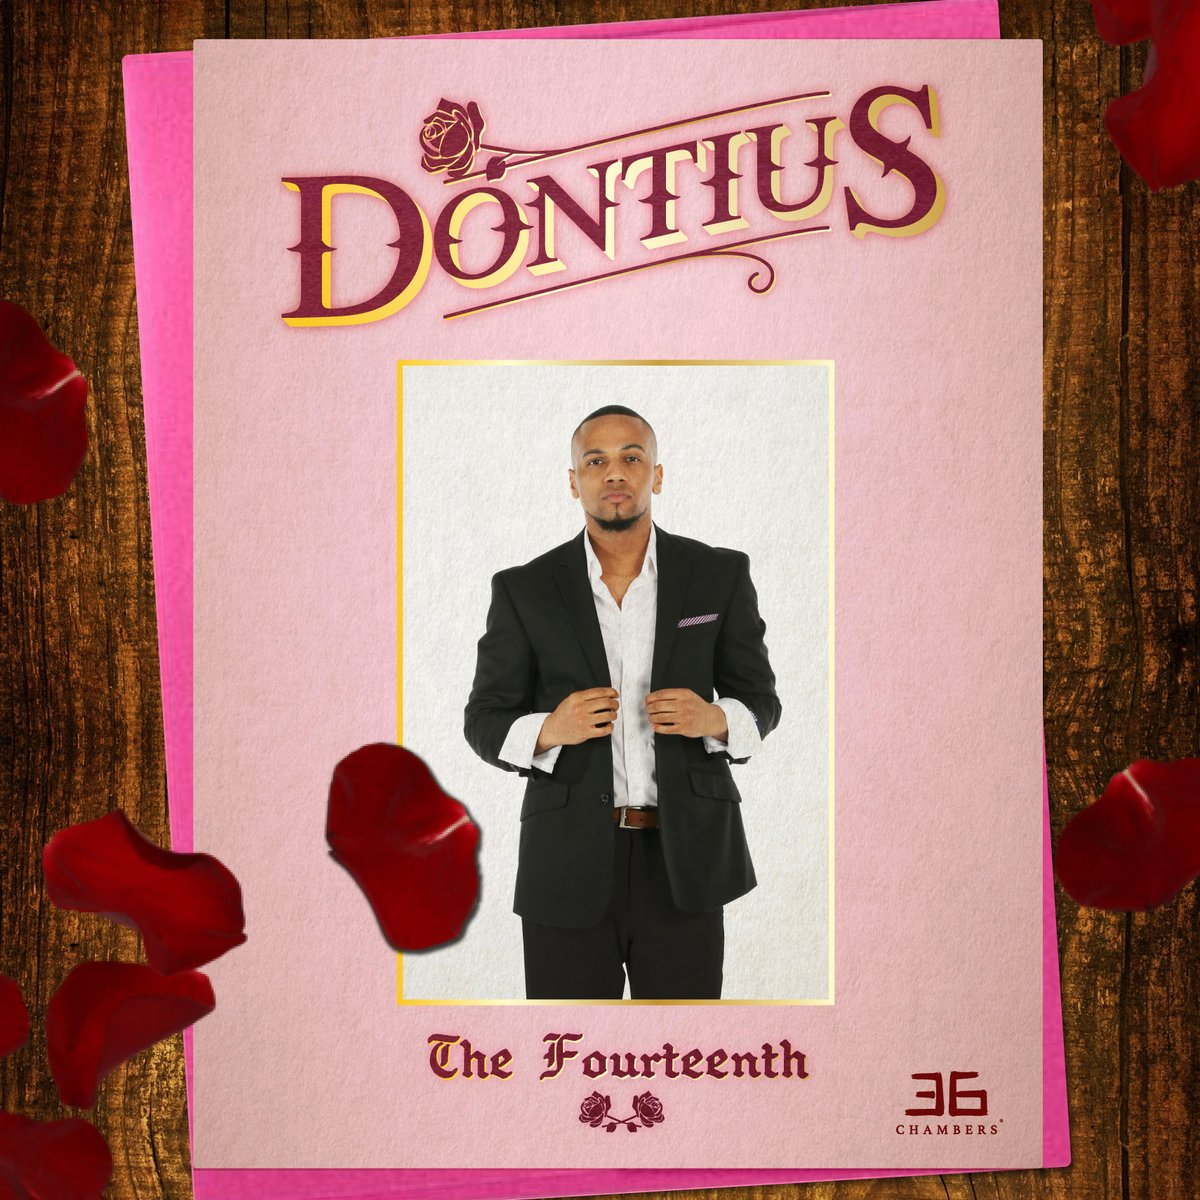 RZA's Protege Dontius Drops Off A Valentine Day Gift With 'The Fourteenth' EP